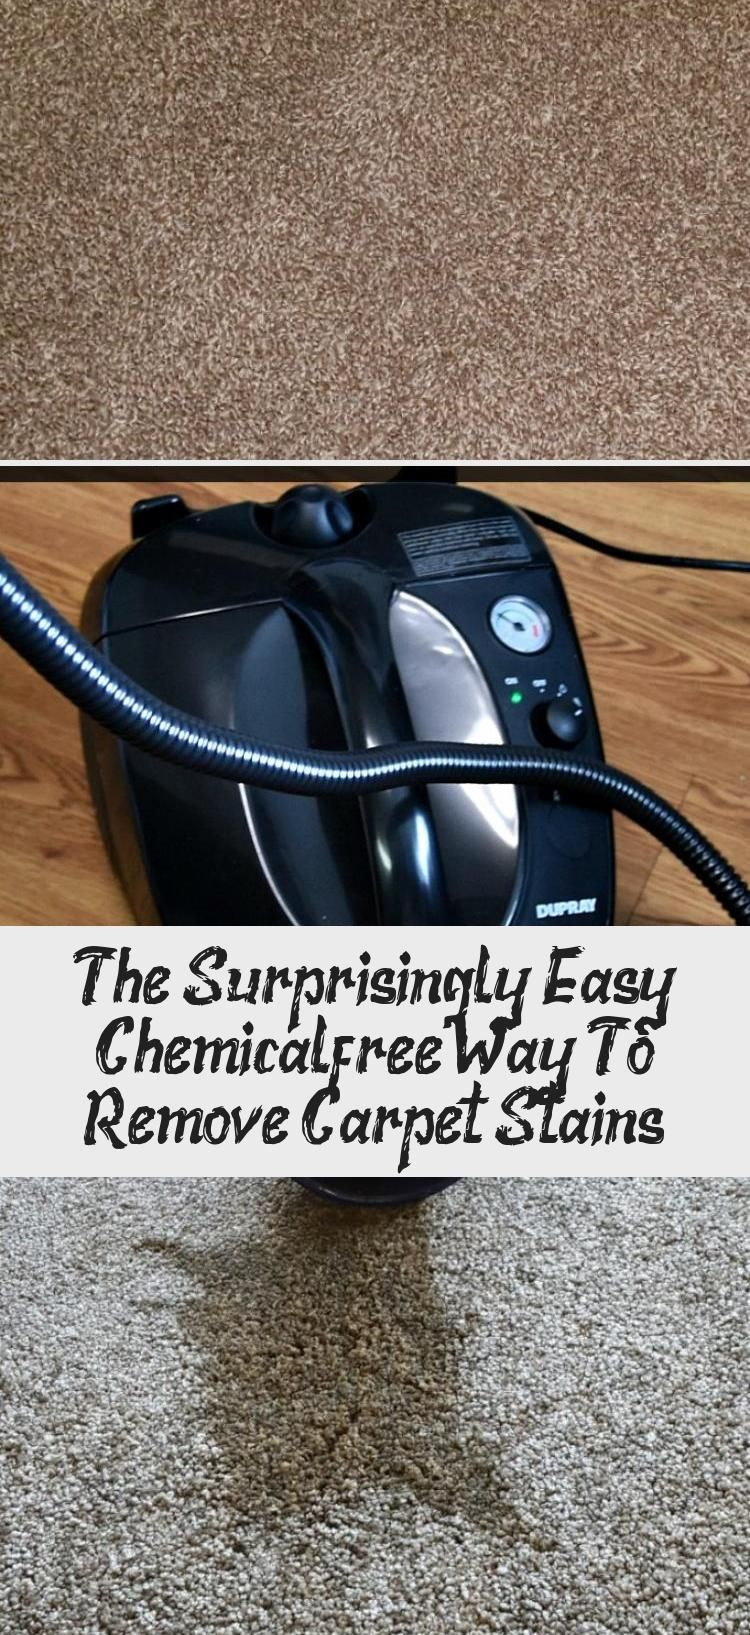 The Surprisingly Easy Chemical Free Way To Remove Carpet Stains In 2020 Stain Remover Carpet Carpet Stains Diy Carpet Stain Remover